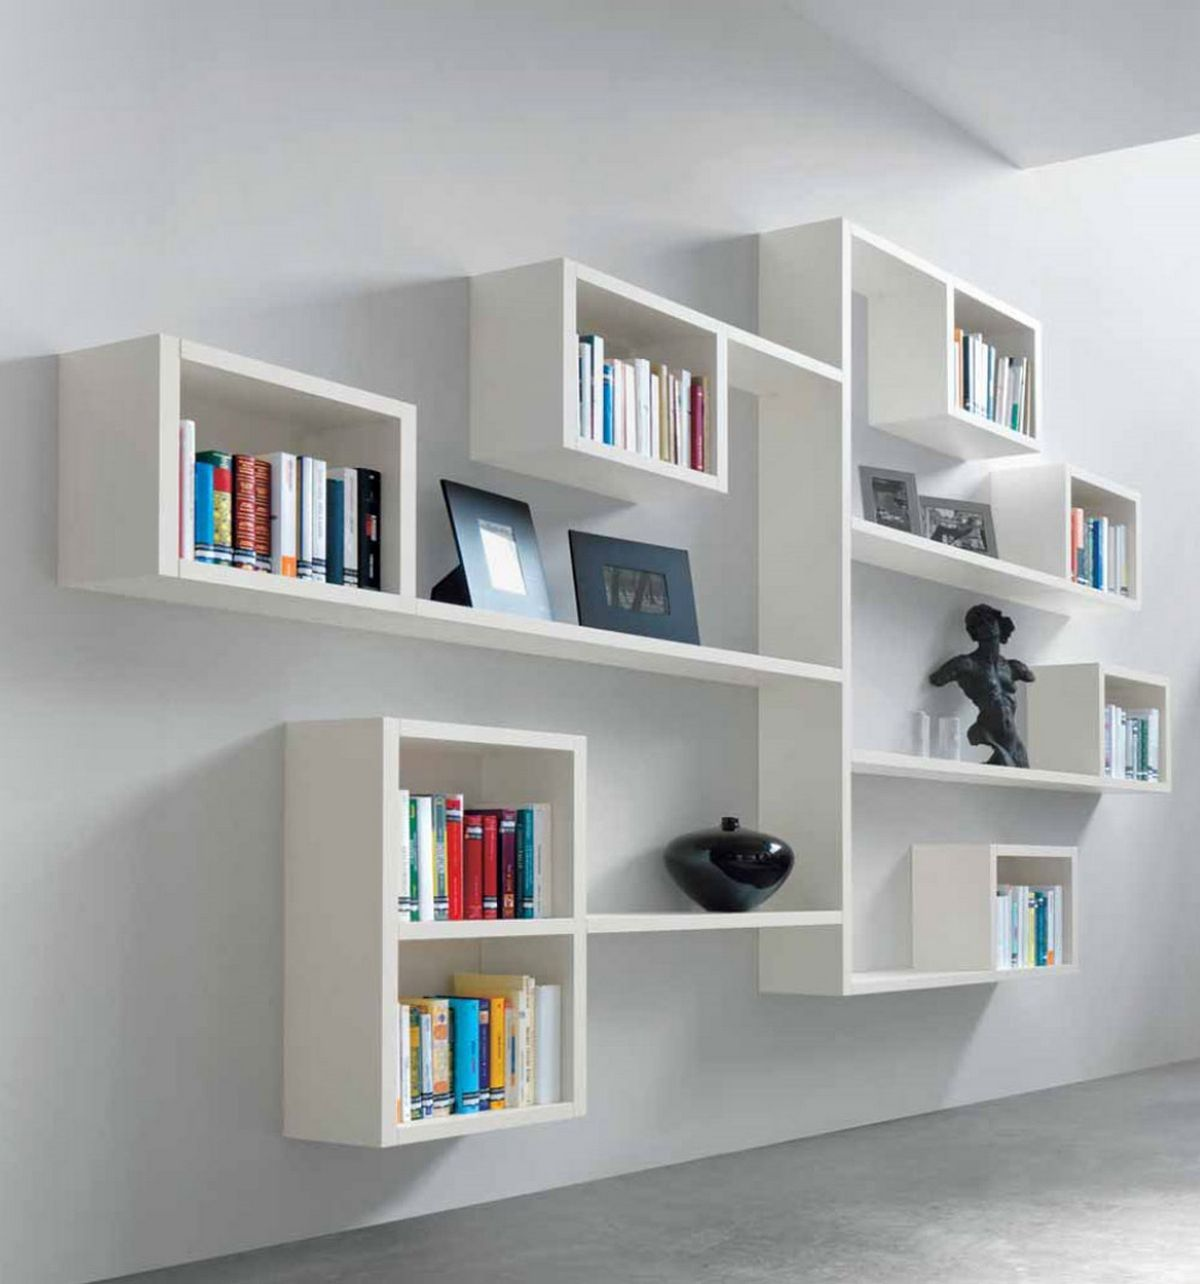 Pristine White Bookshelves Elegant 26 Of The Most Creative Bookshelves Designs White Bookshelves For Wall Bookshelf Design Shelves Creative Bookshelves